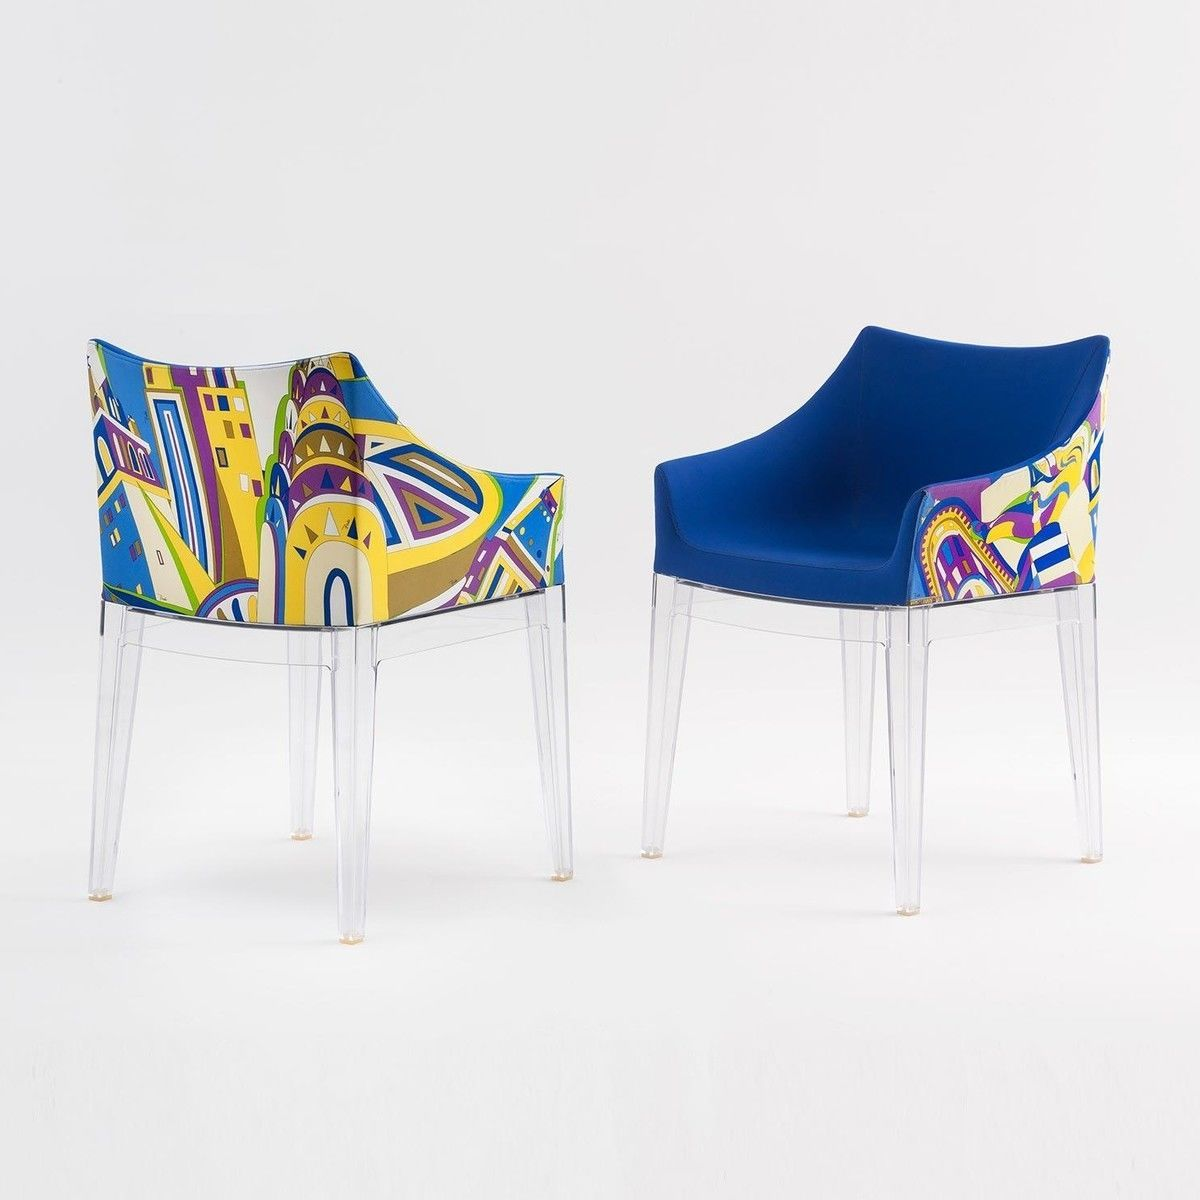 Prince Charles Fauteuils Bleus Madame Pucci Chaise Avec Accoudoirs Kartell